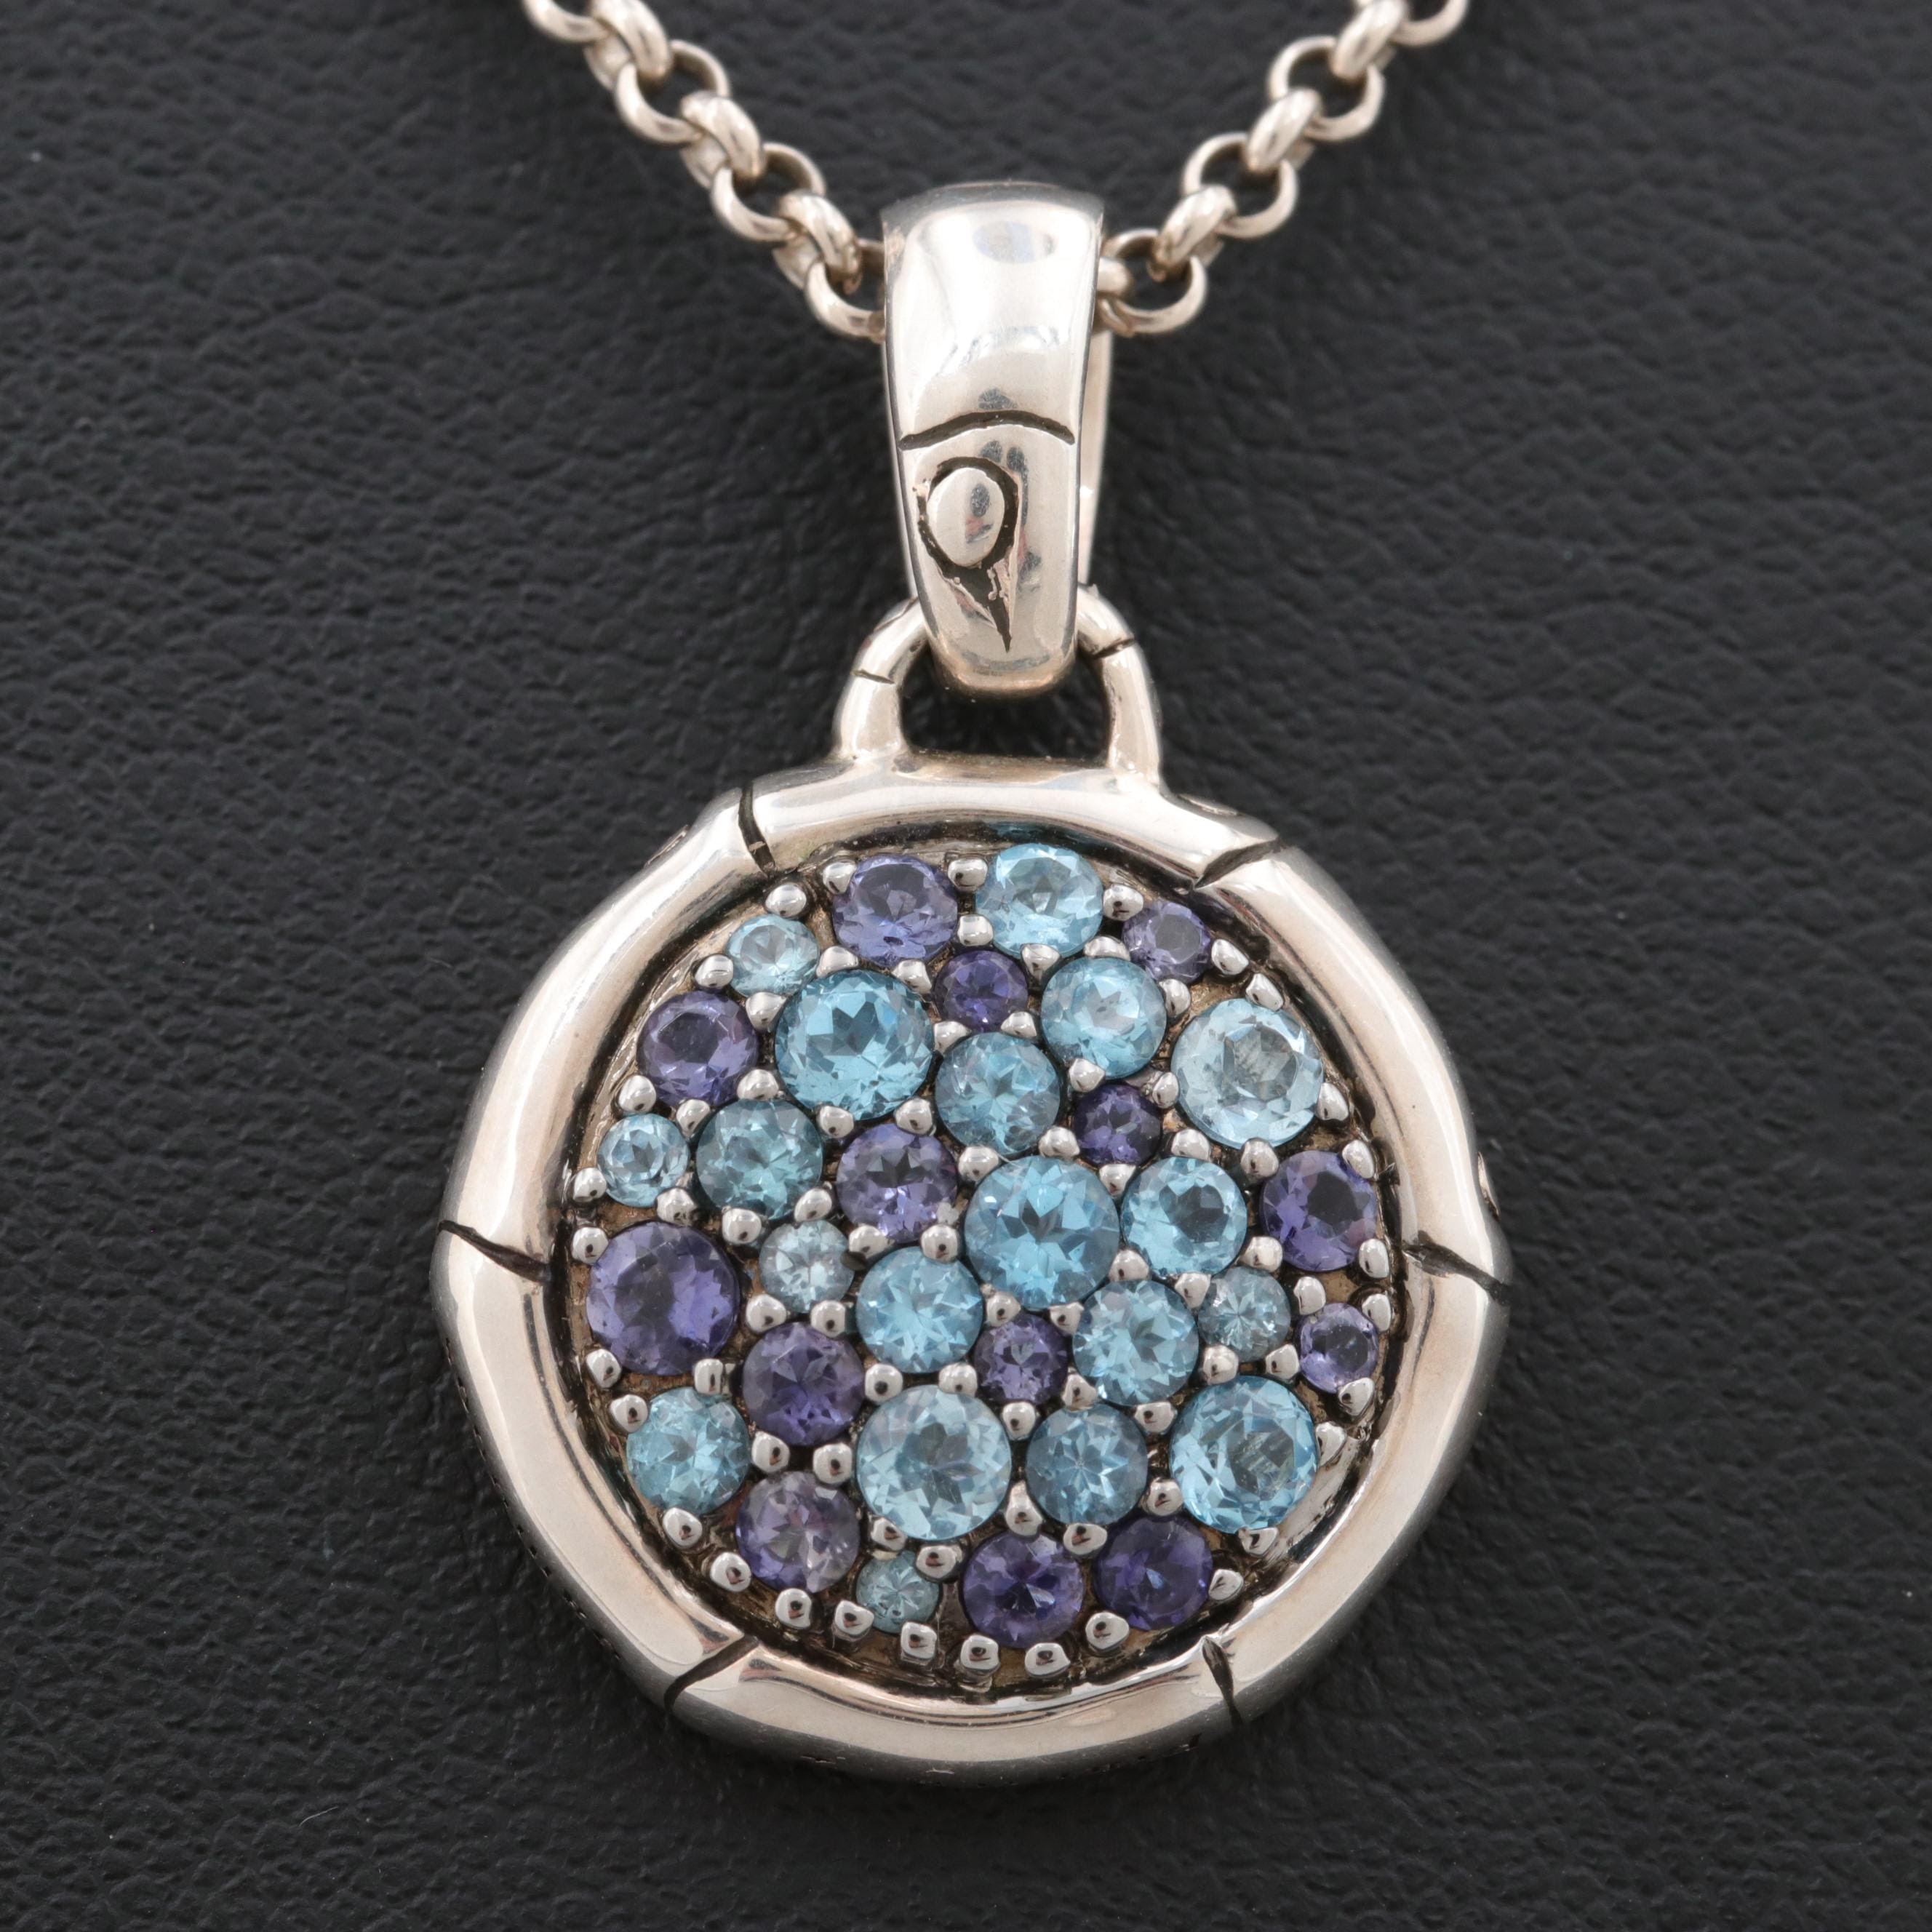 John Hardy Sterling Silver Blue Topaz and Iolite Pendant Necklace